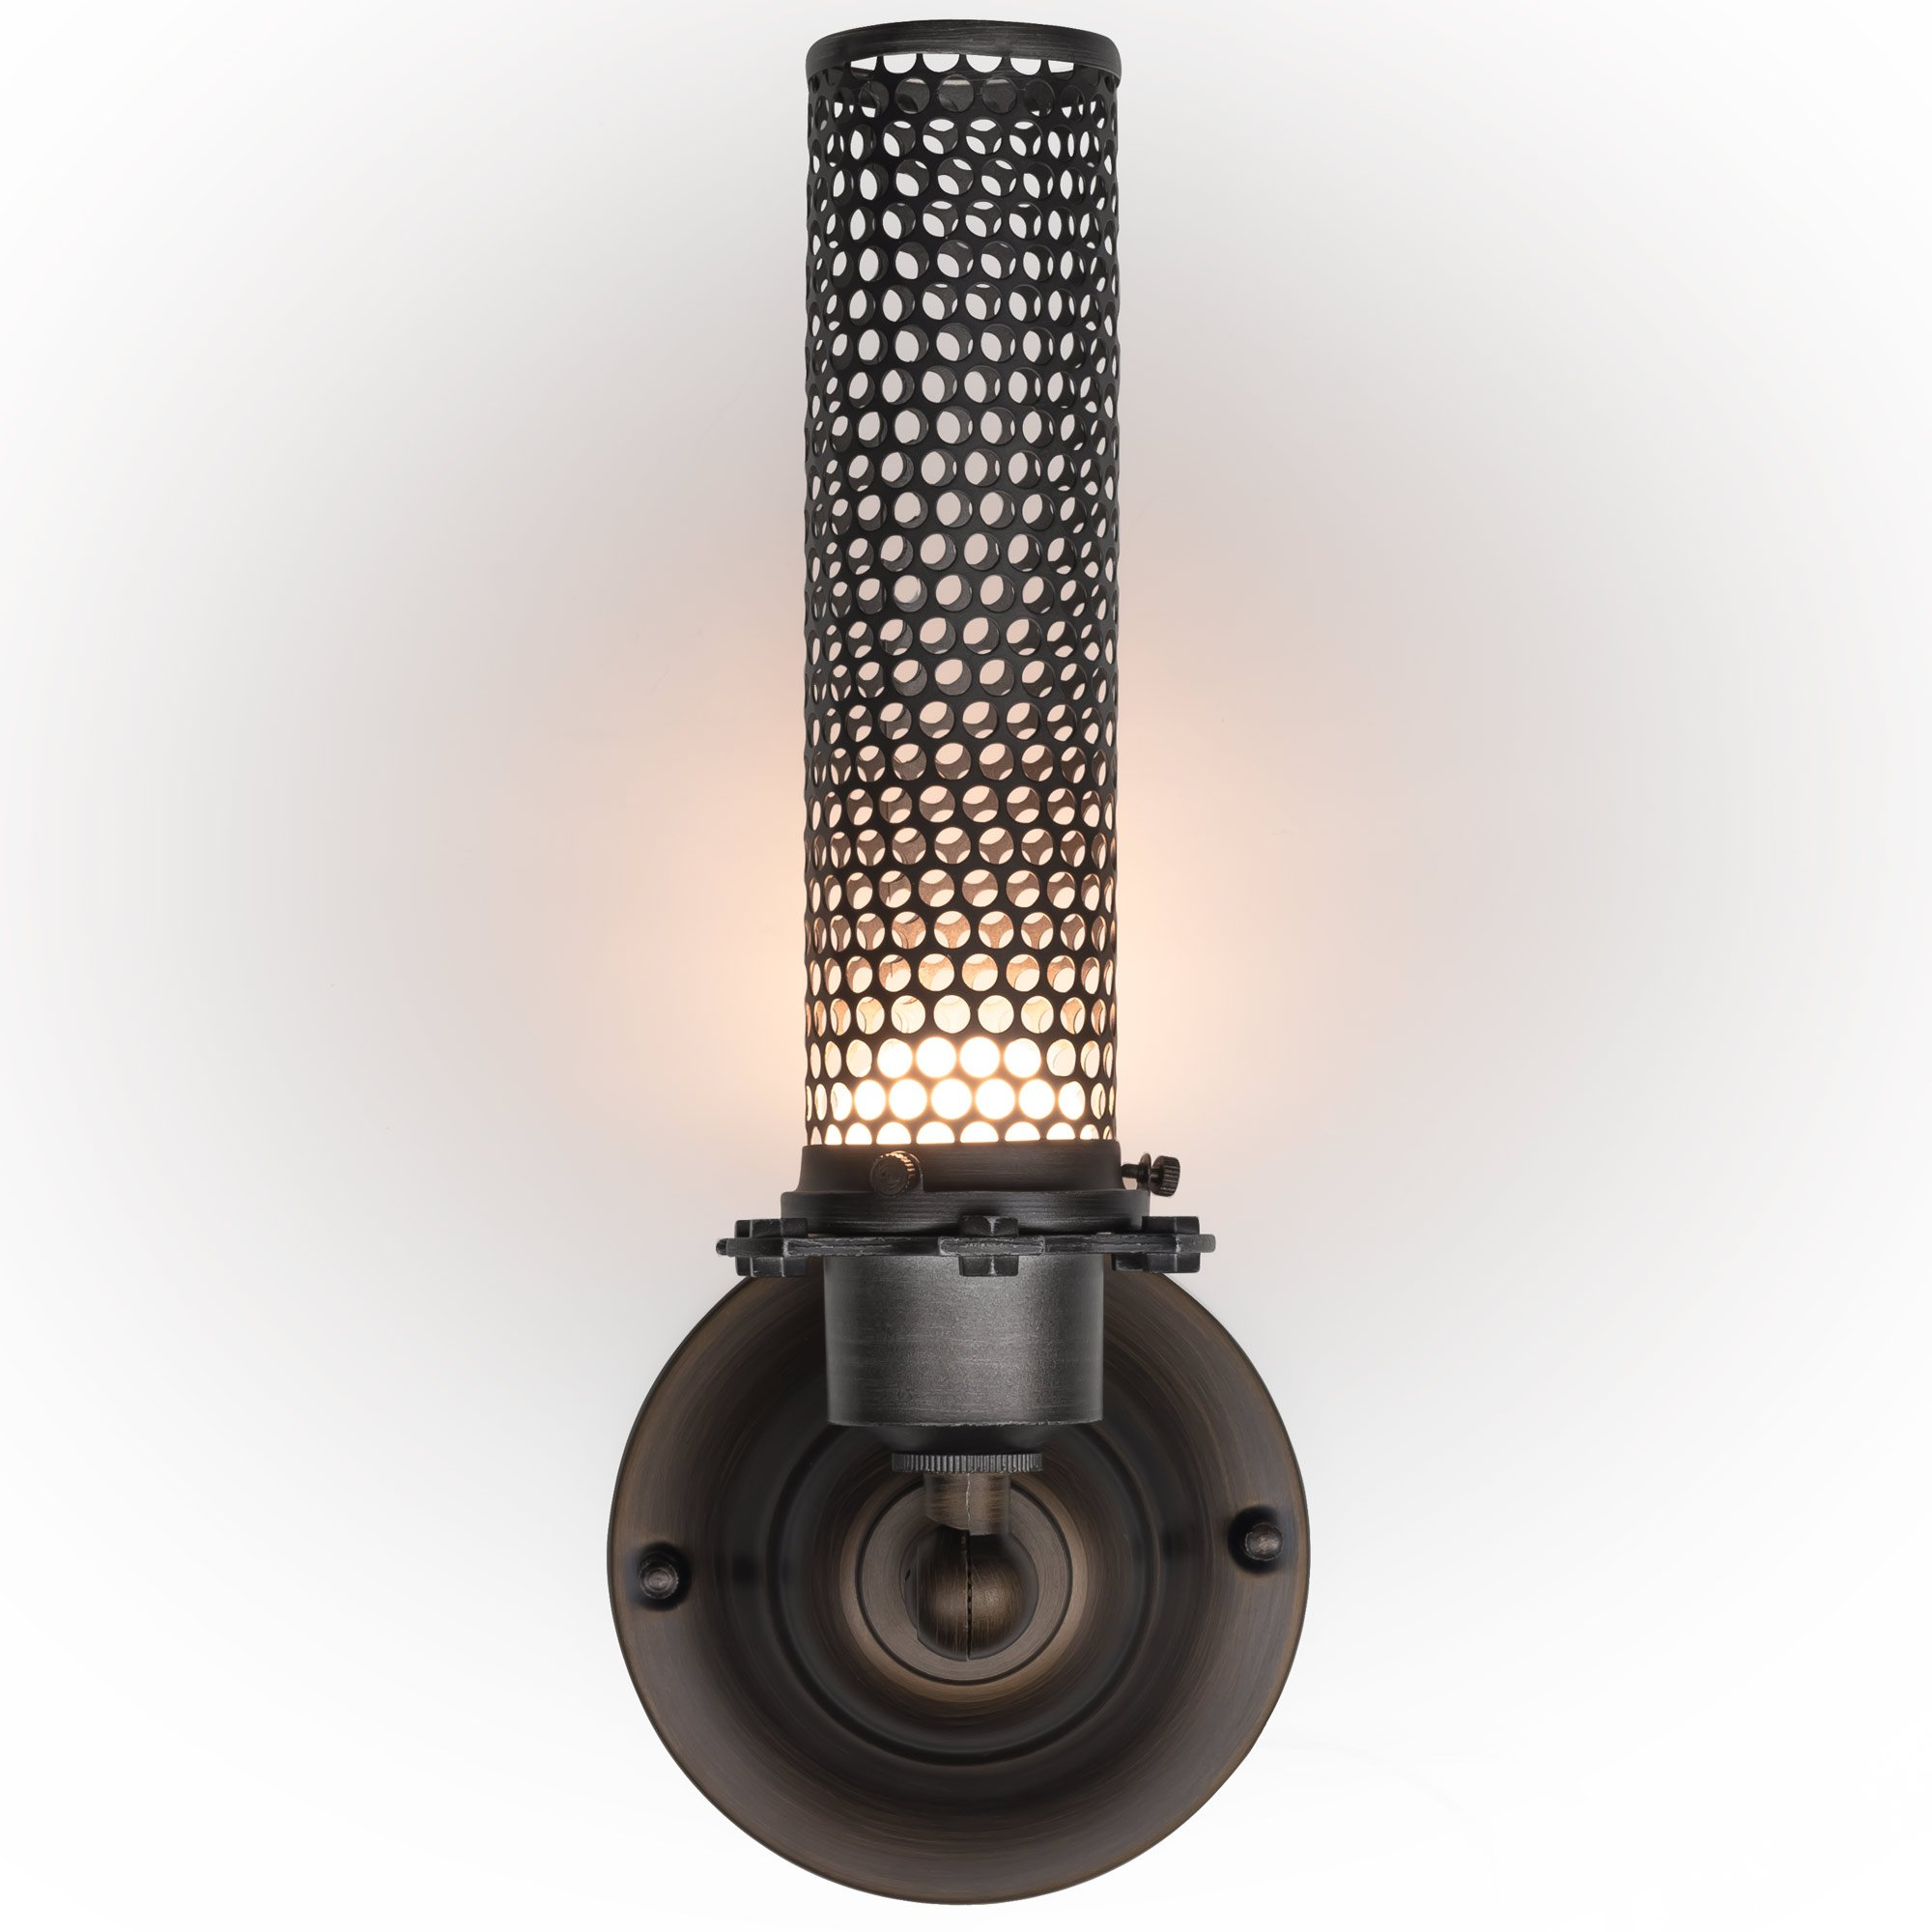 Light Blue™ LED Wall Sconce Lighting, Wrought Iron Metal Mesh, 18-inch 3000K Warm White, 300 Lumens, Dimmable, ETL and Energy Star Listed